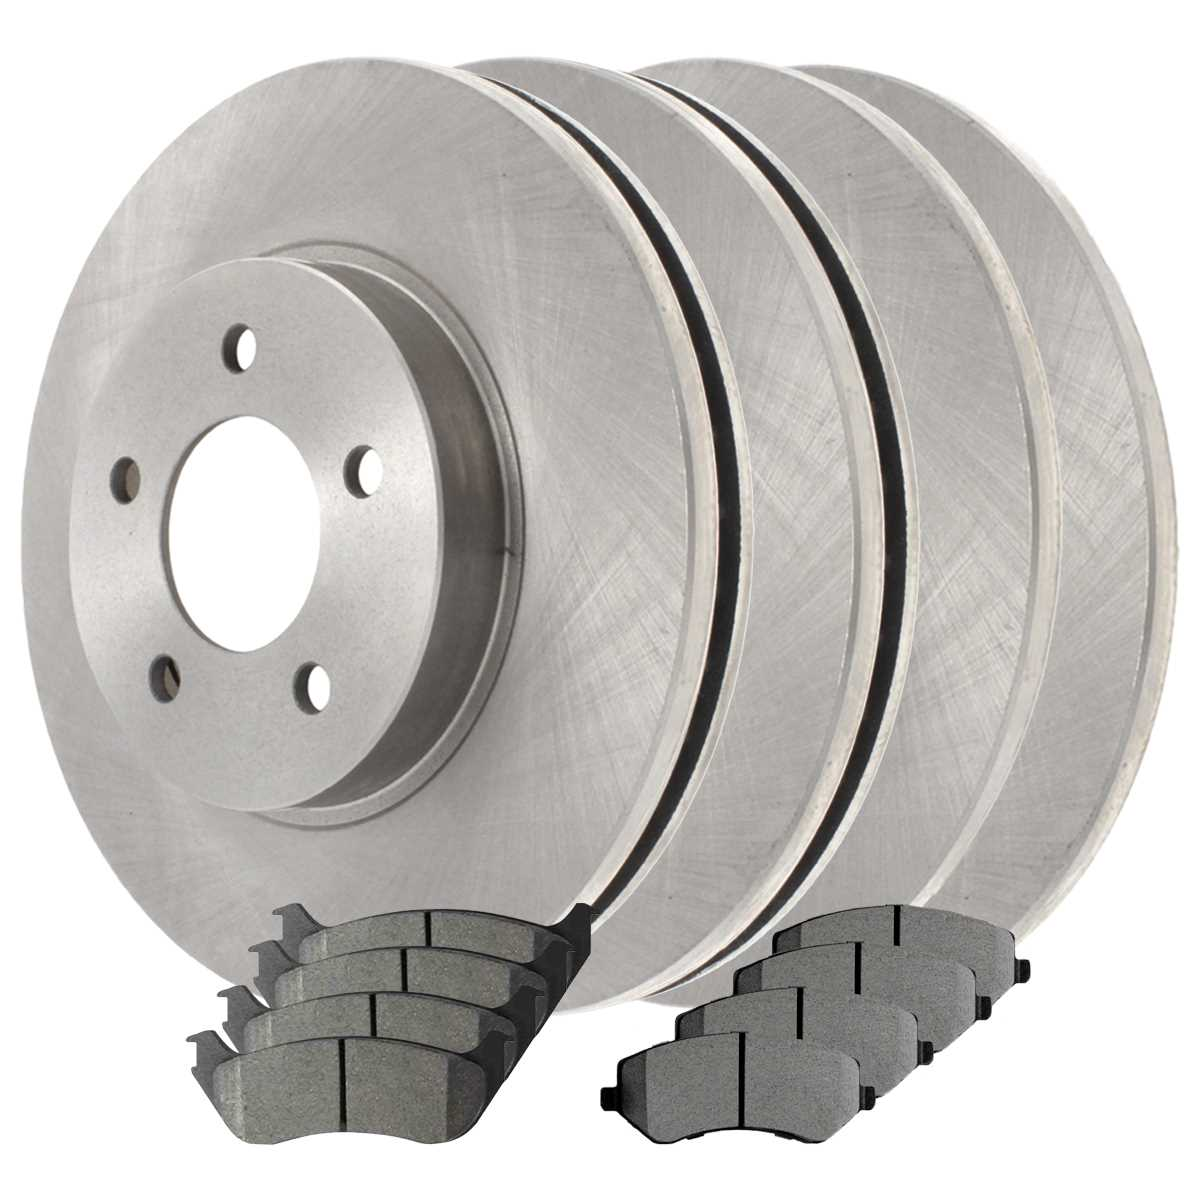 Auto Shack SCDR9995 Front and Rear Brake Rotors and Ceramic Pads